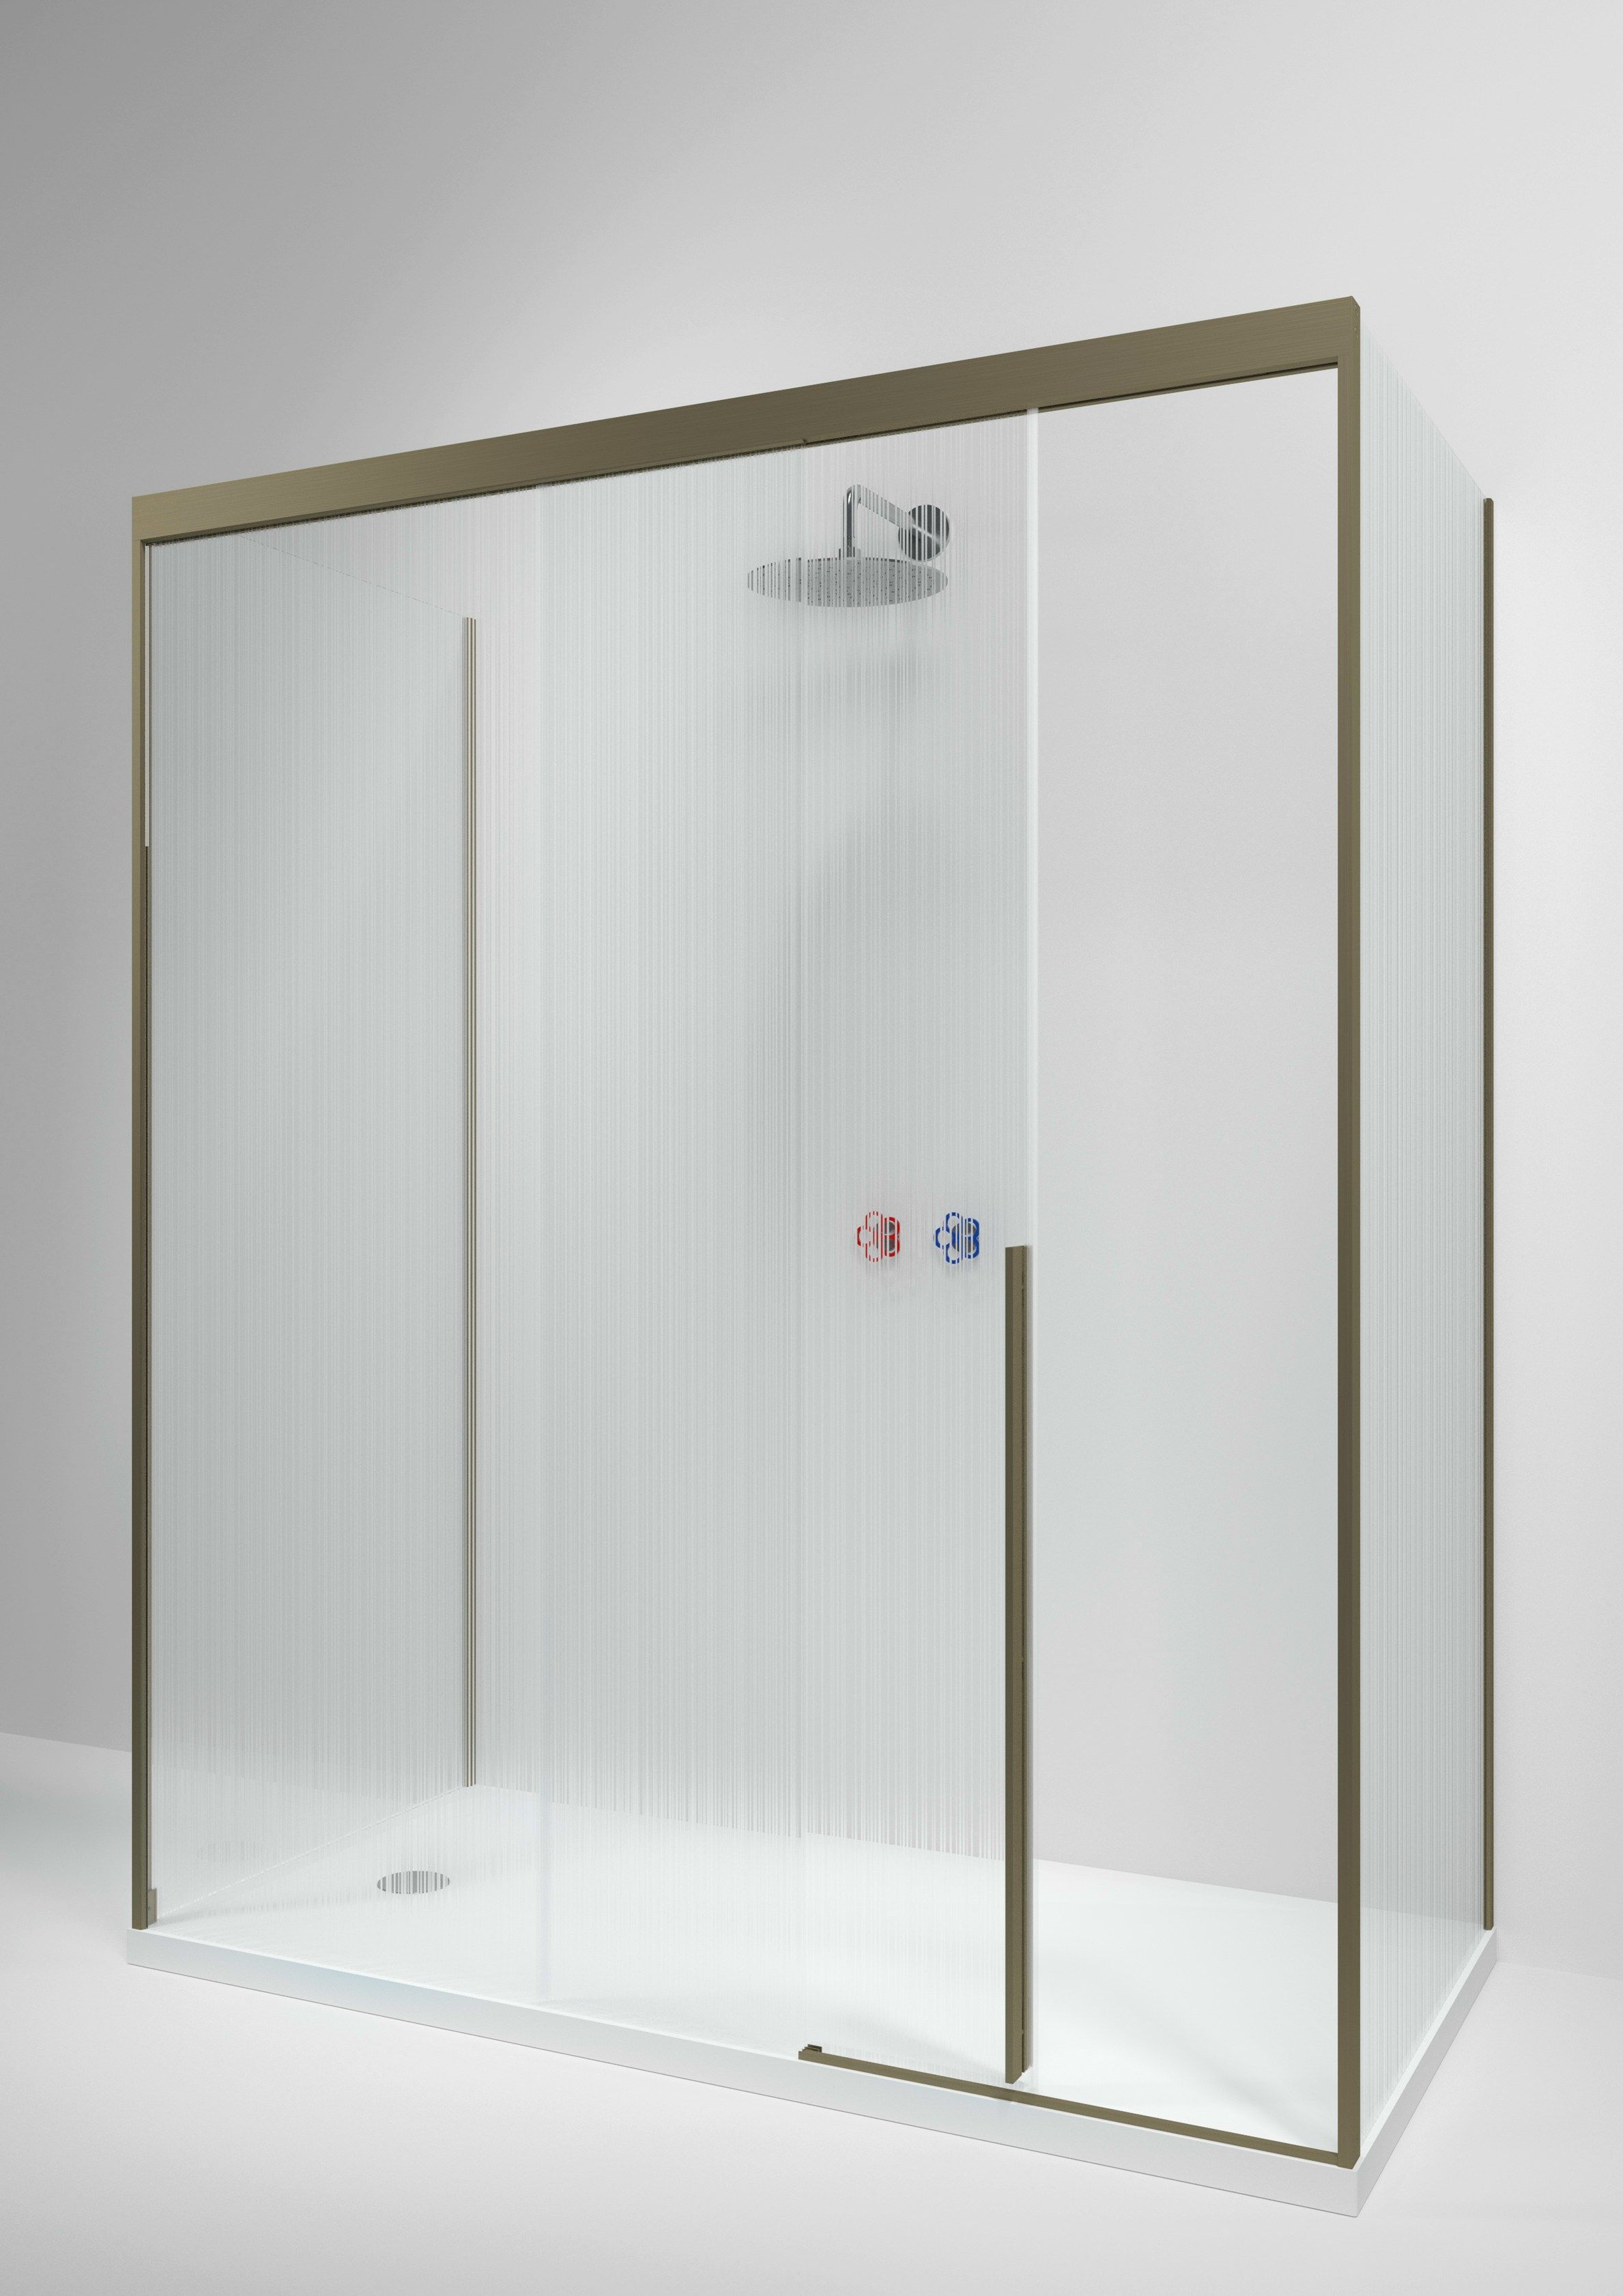 Rectangular glass shower cabin with sliding door sliding by boffi rectangular glass shower cabin with sliding door sliding by boffi design piero lissoni eventelaan Image collections